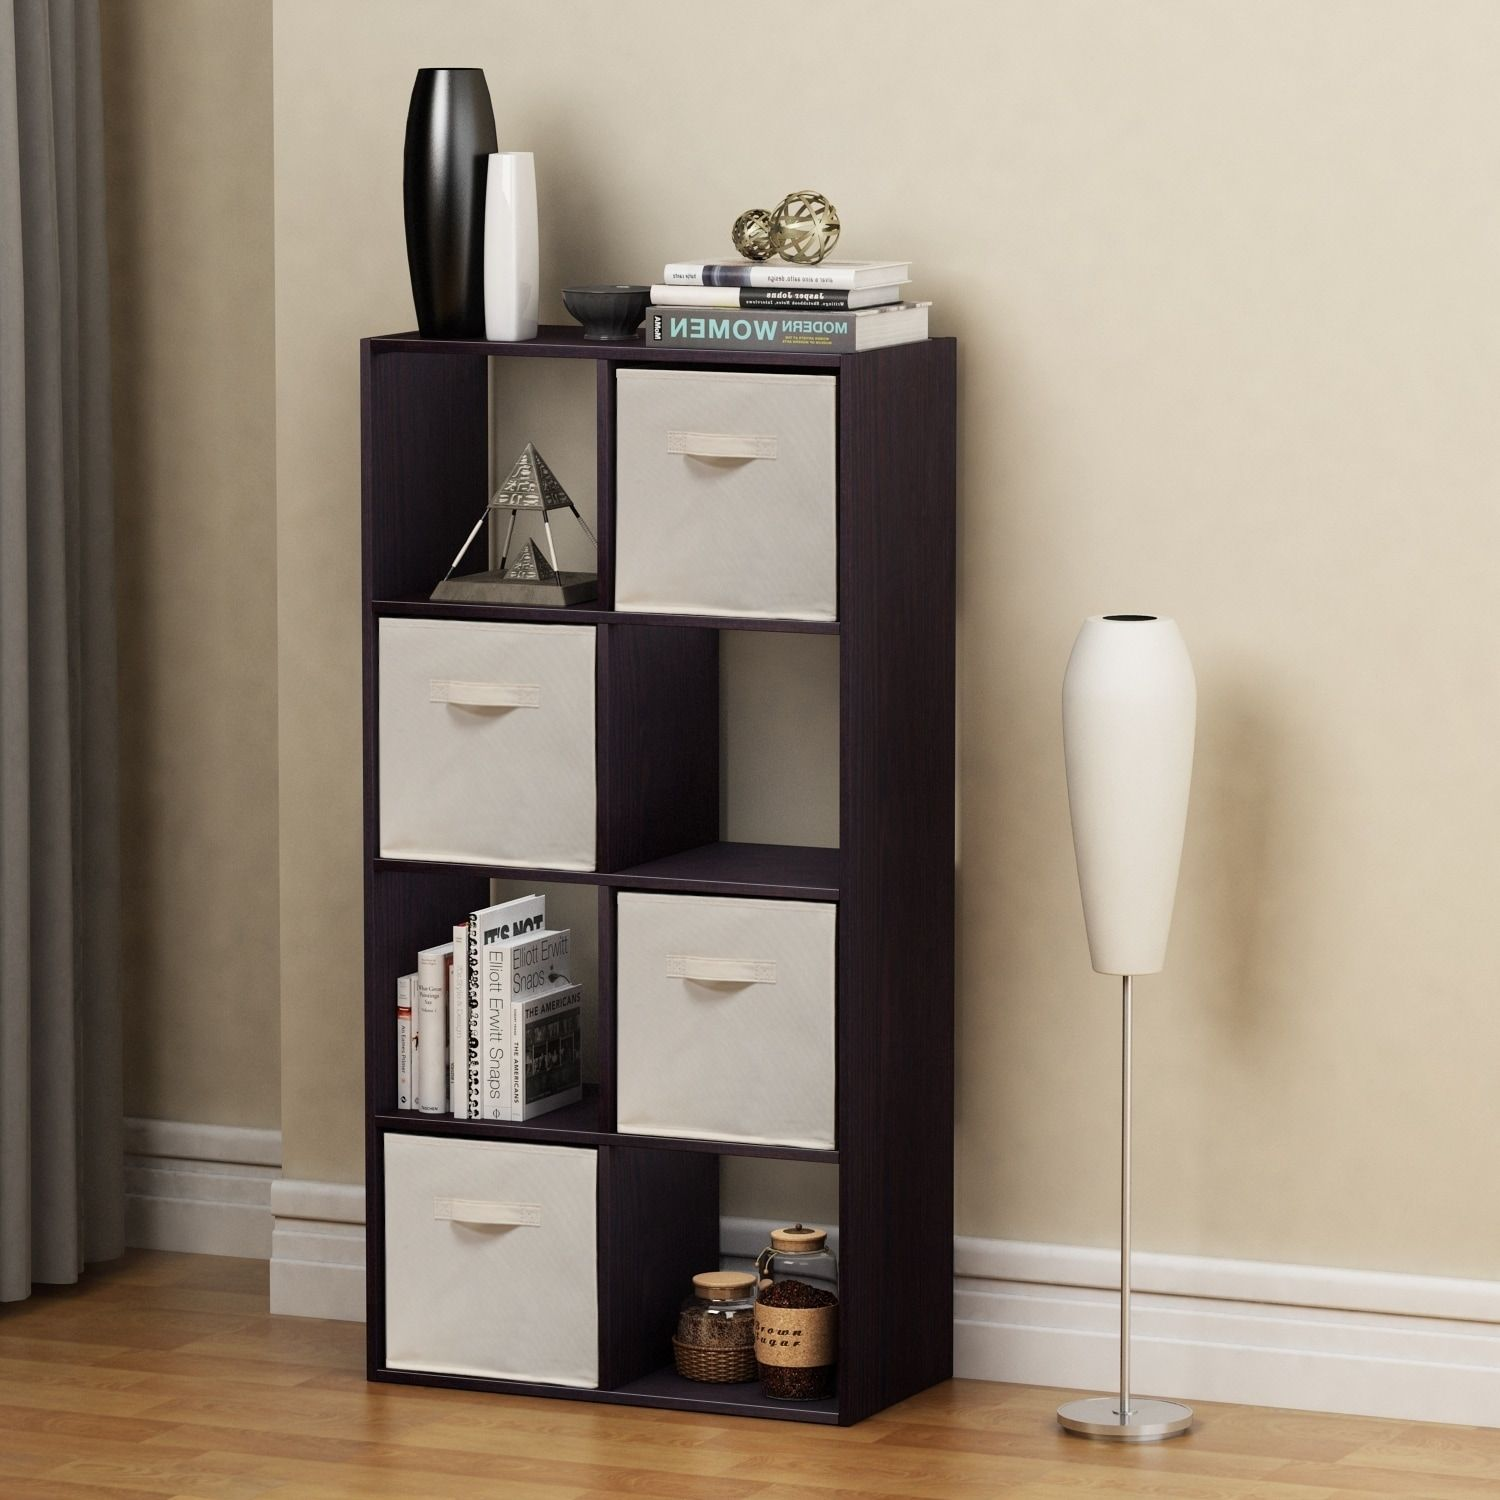 Homestar cube with fabric bins in black brown finish fabric bins